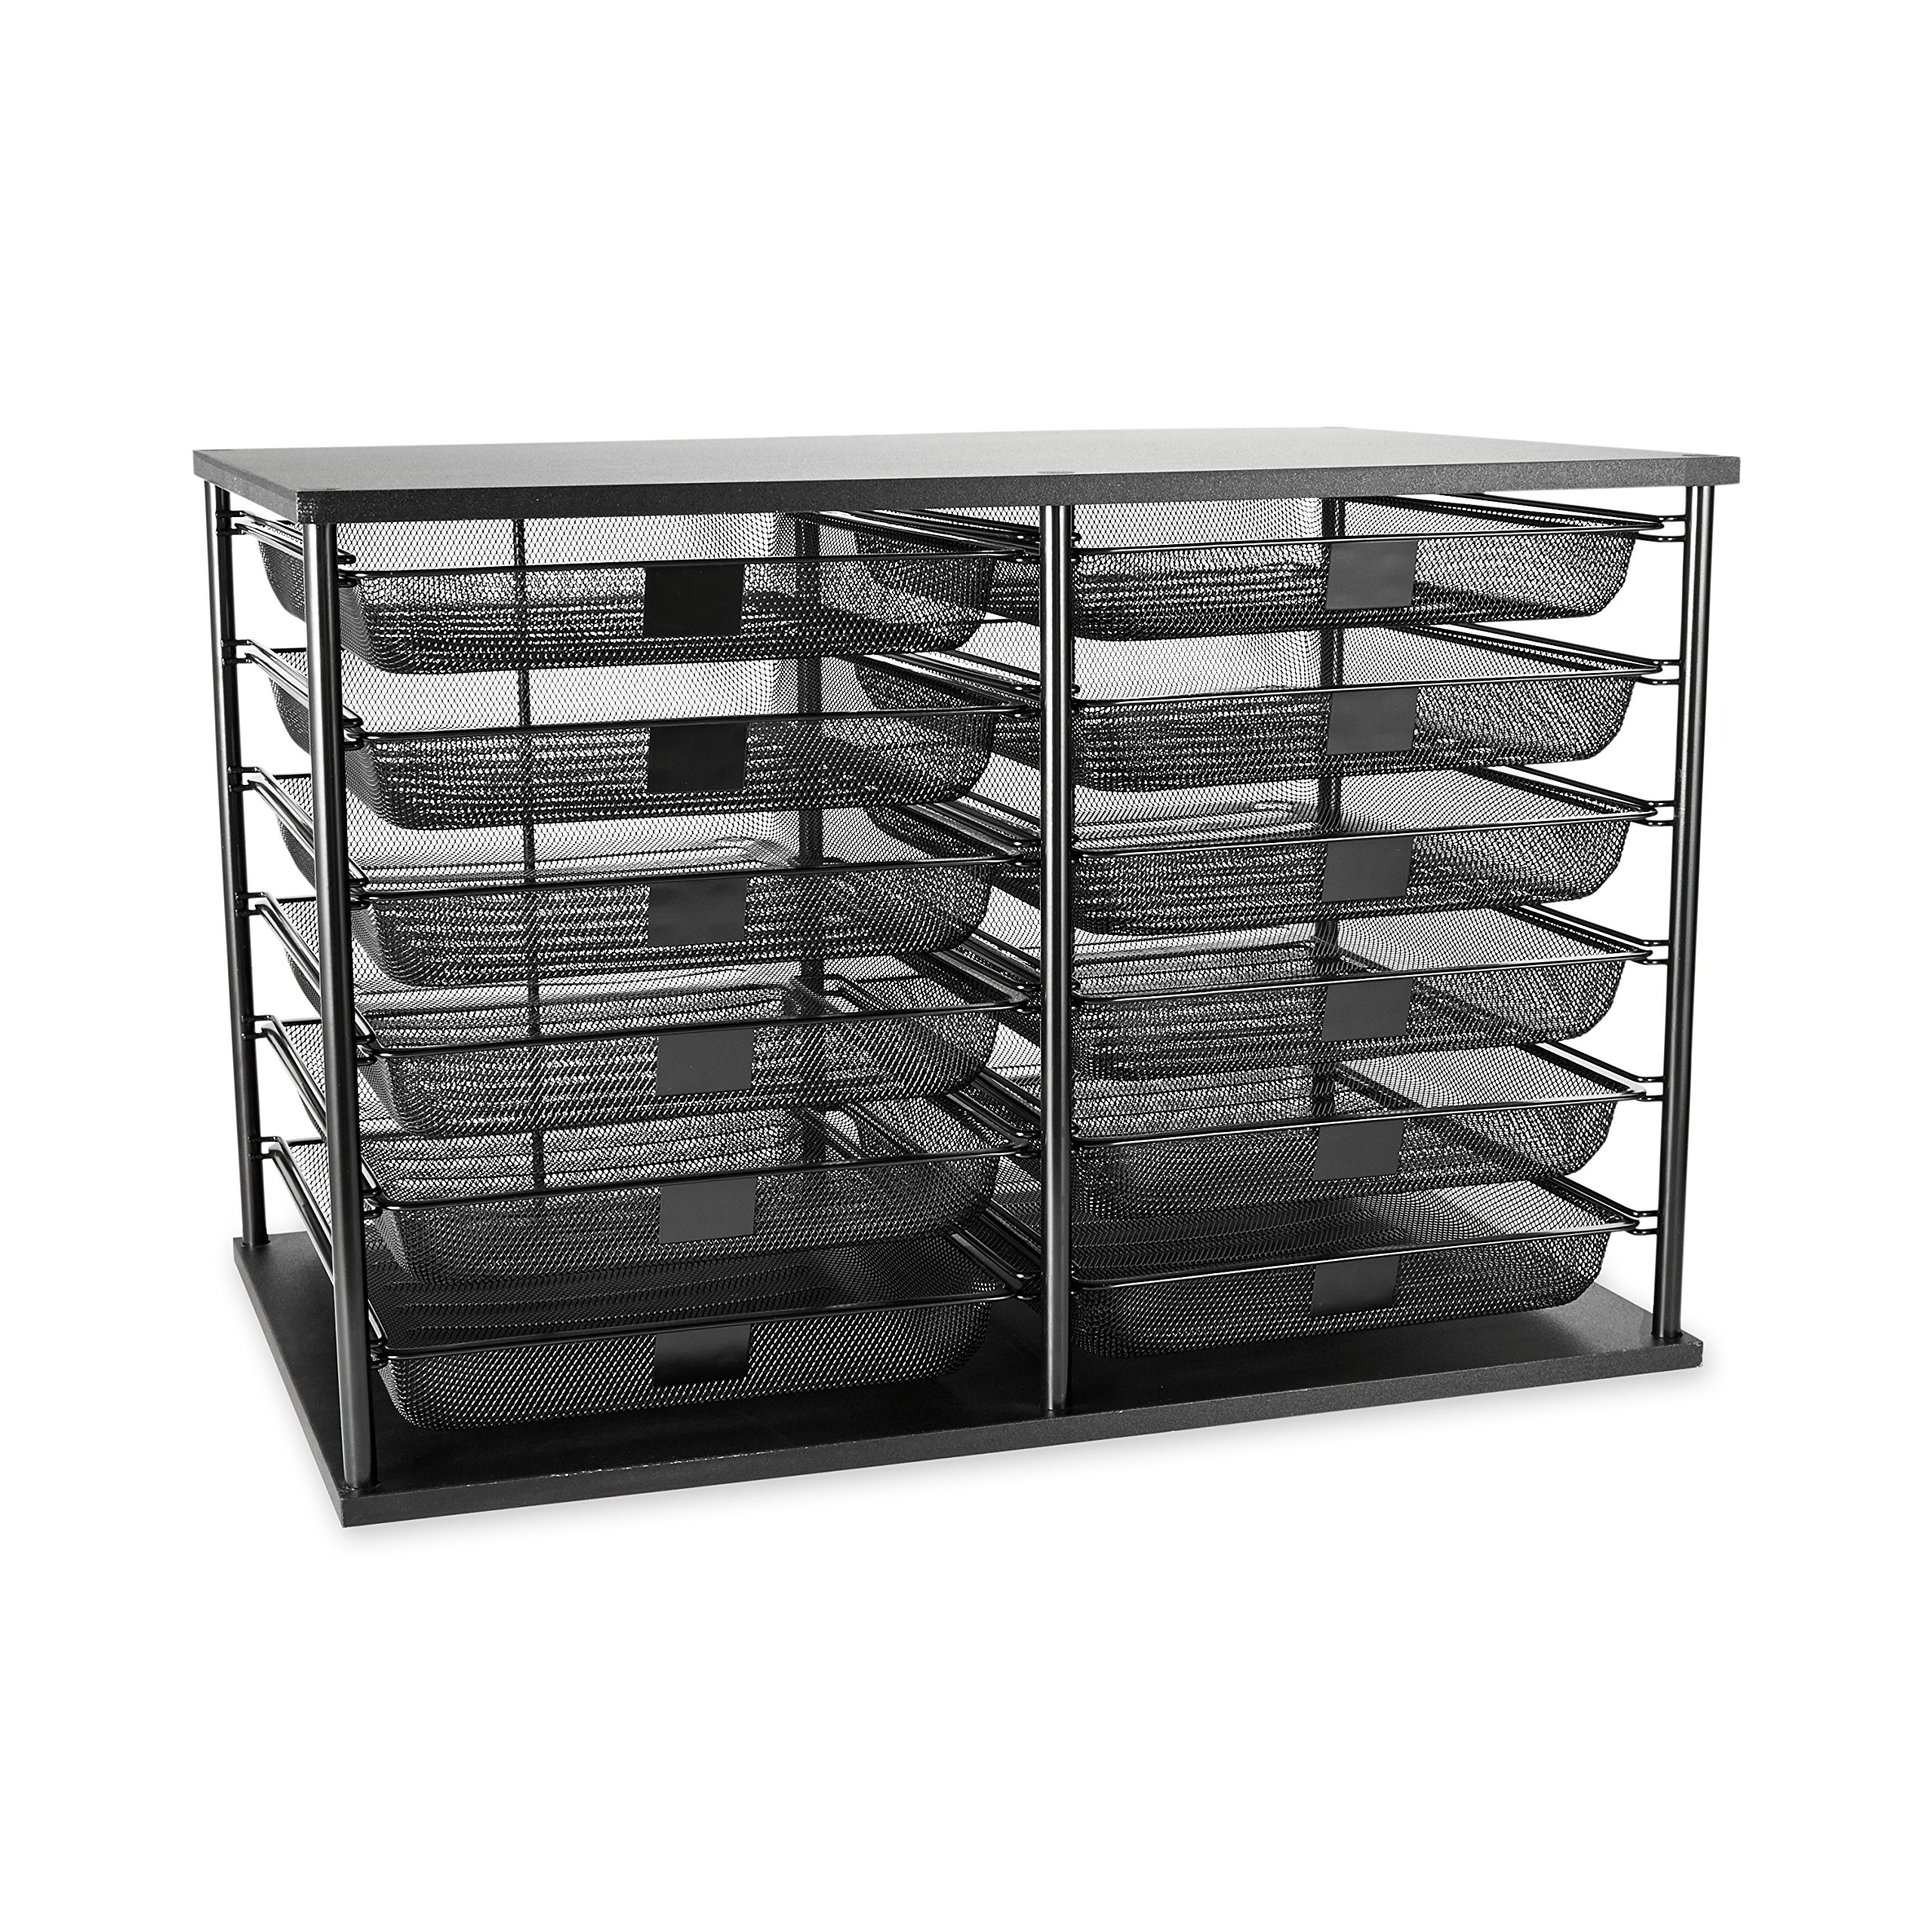 Rubbermaid 1735746 12-Compartment Organizer by Rubbermaid